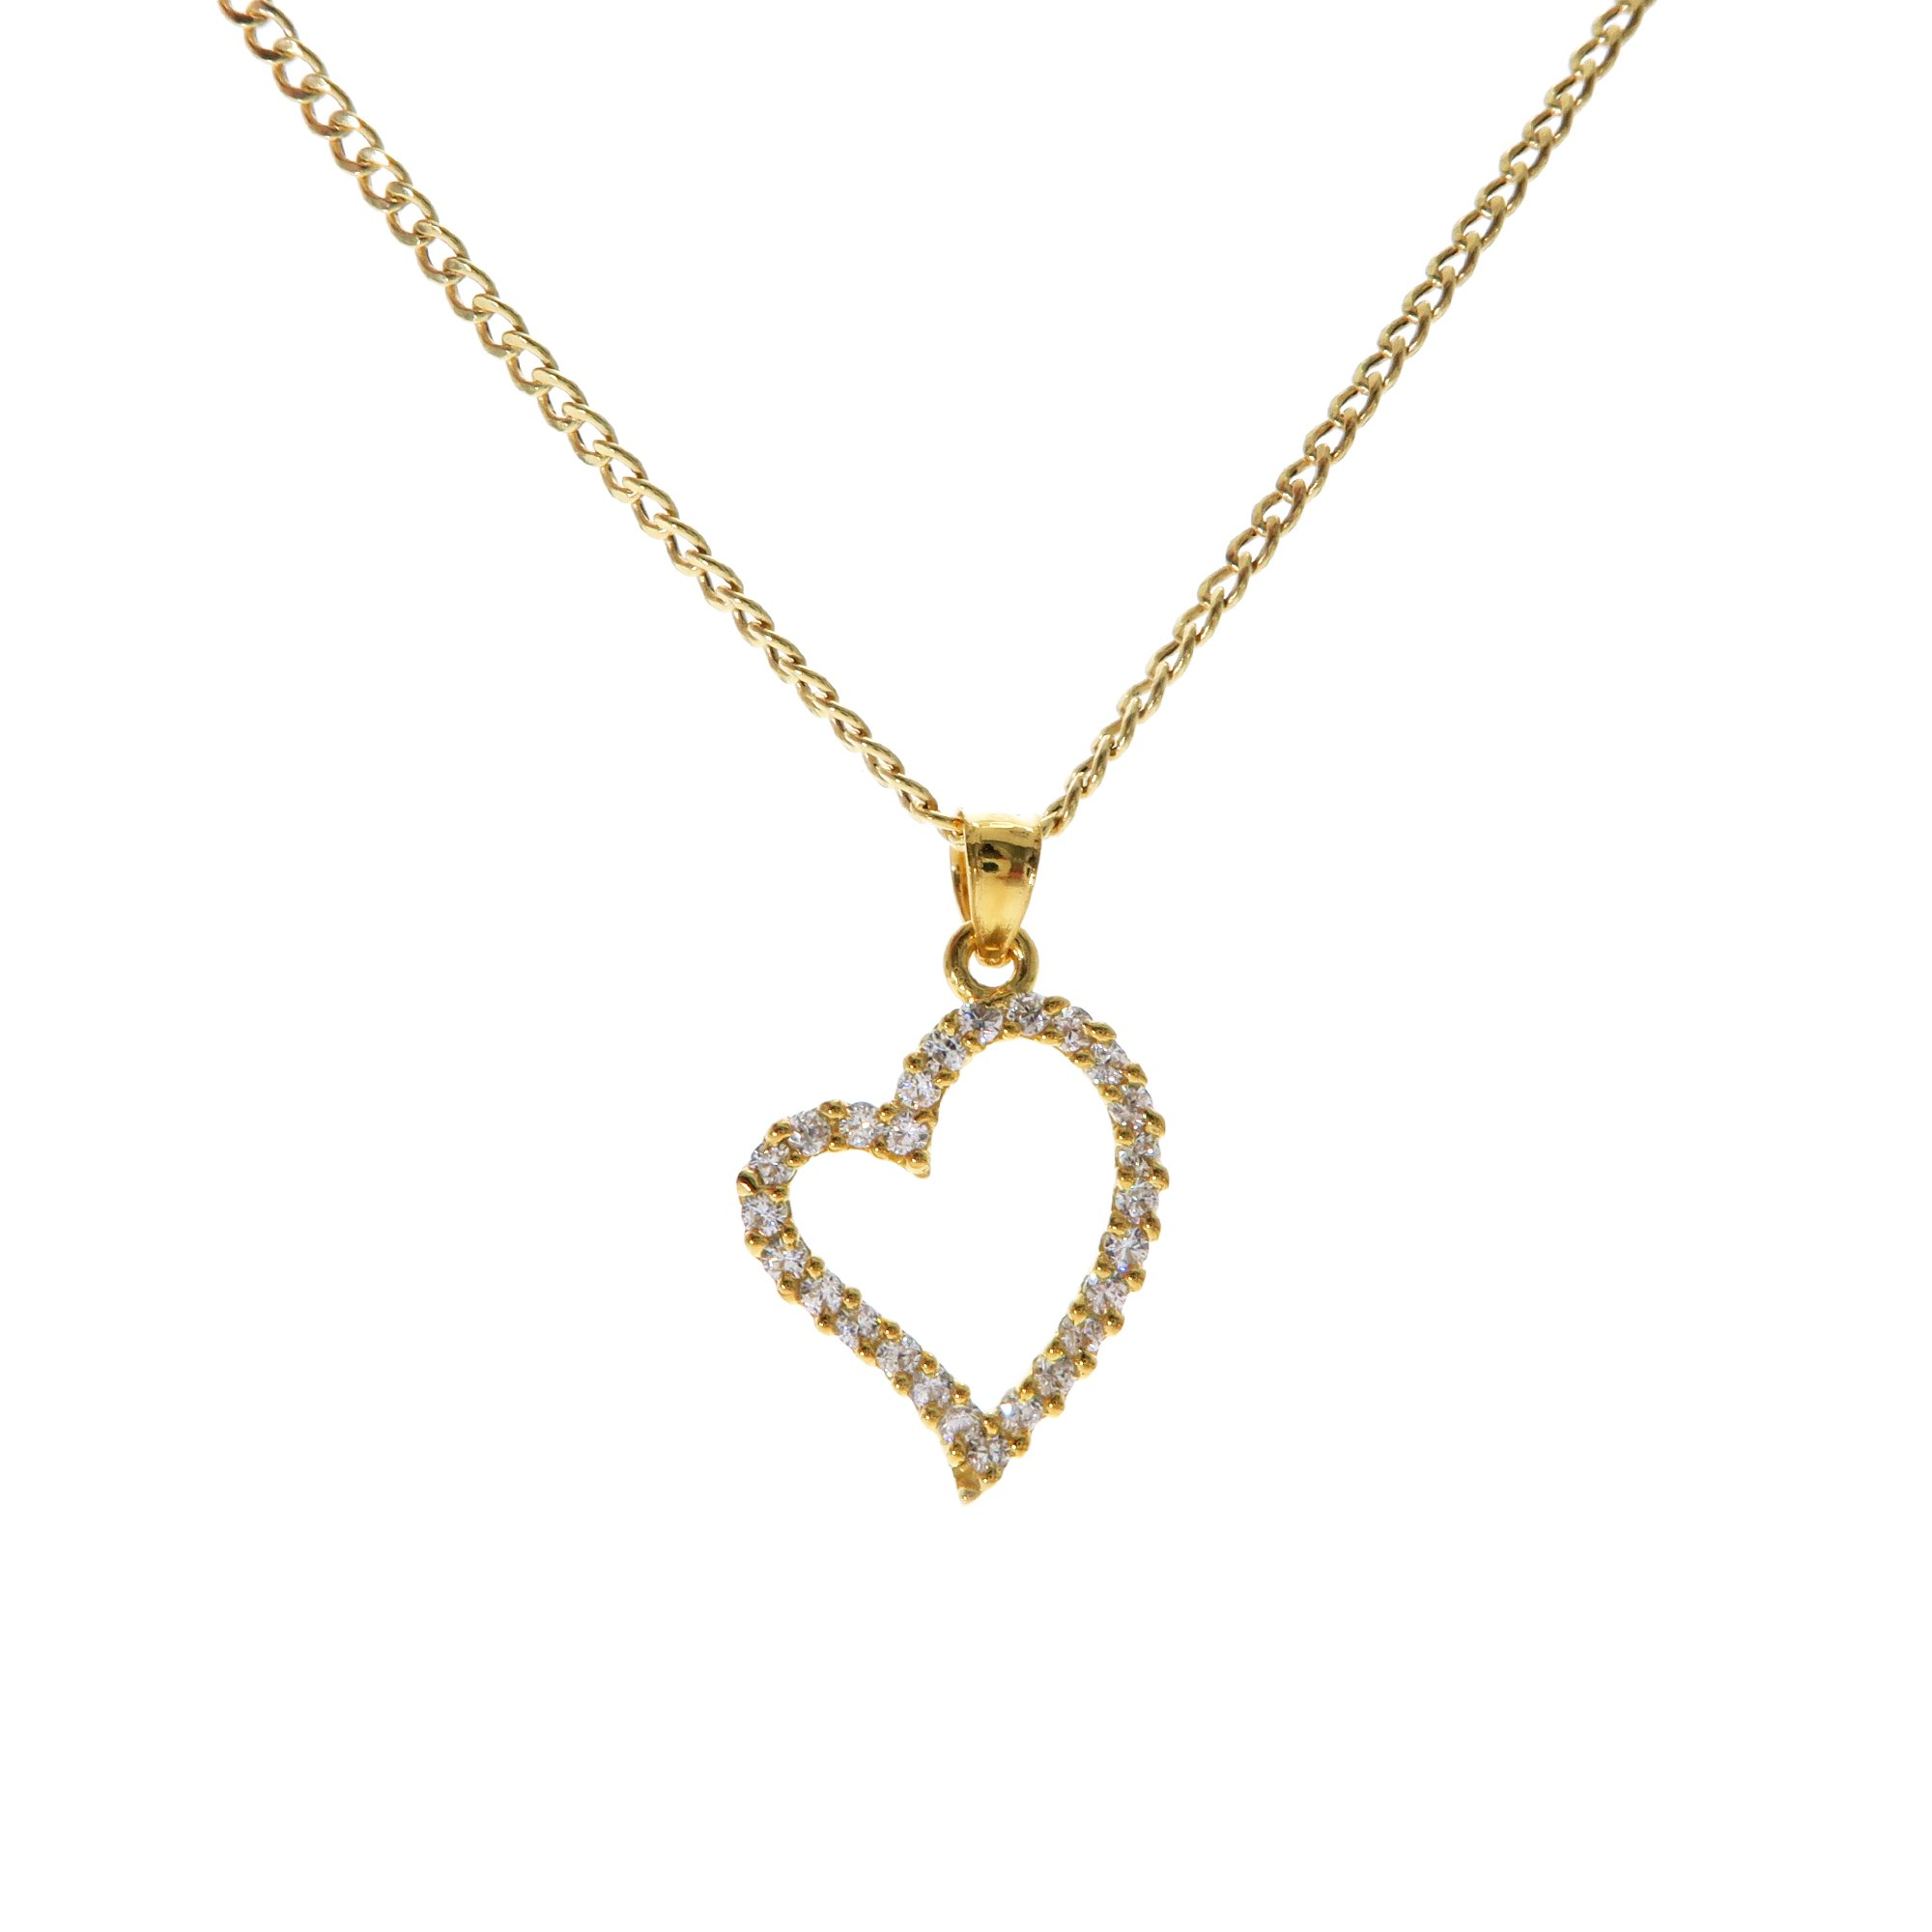 Genuine Stamped 10K Yellow Gold Cuban Curb Link Chain Small Charm Pendant Necklace [ASSORTED SETS] (Heart + 22 Inches Necklace)